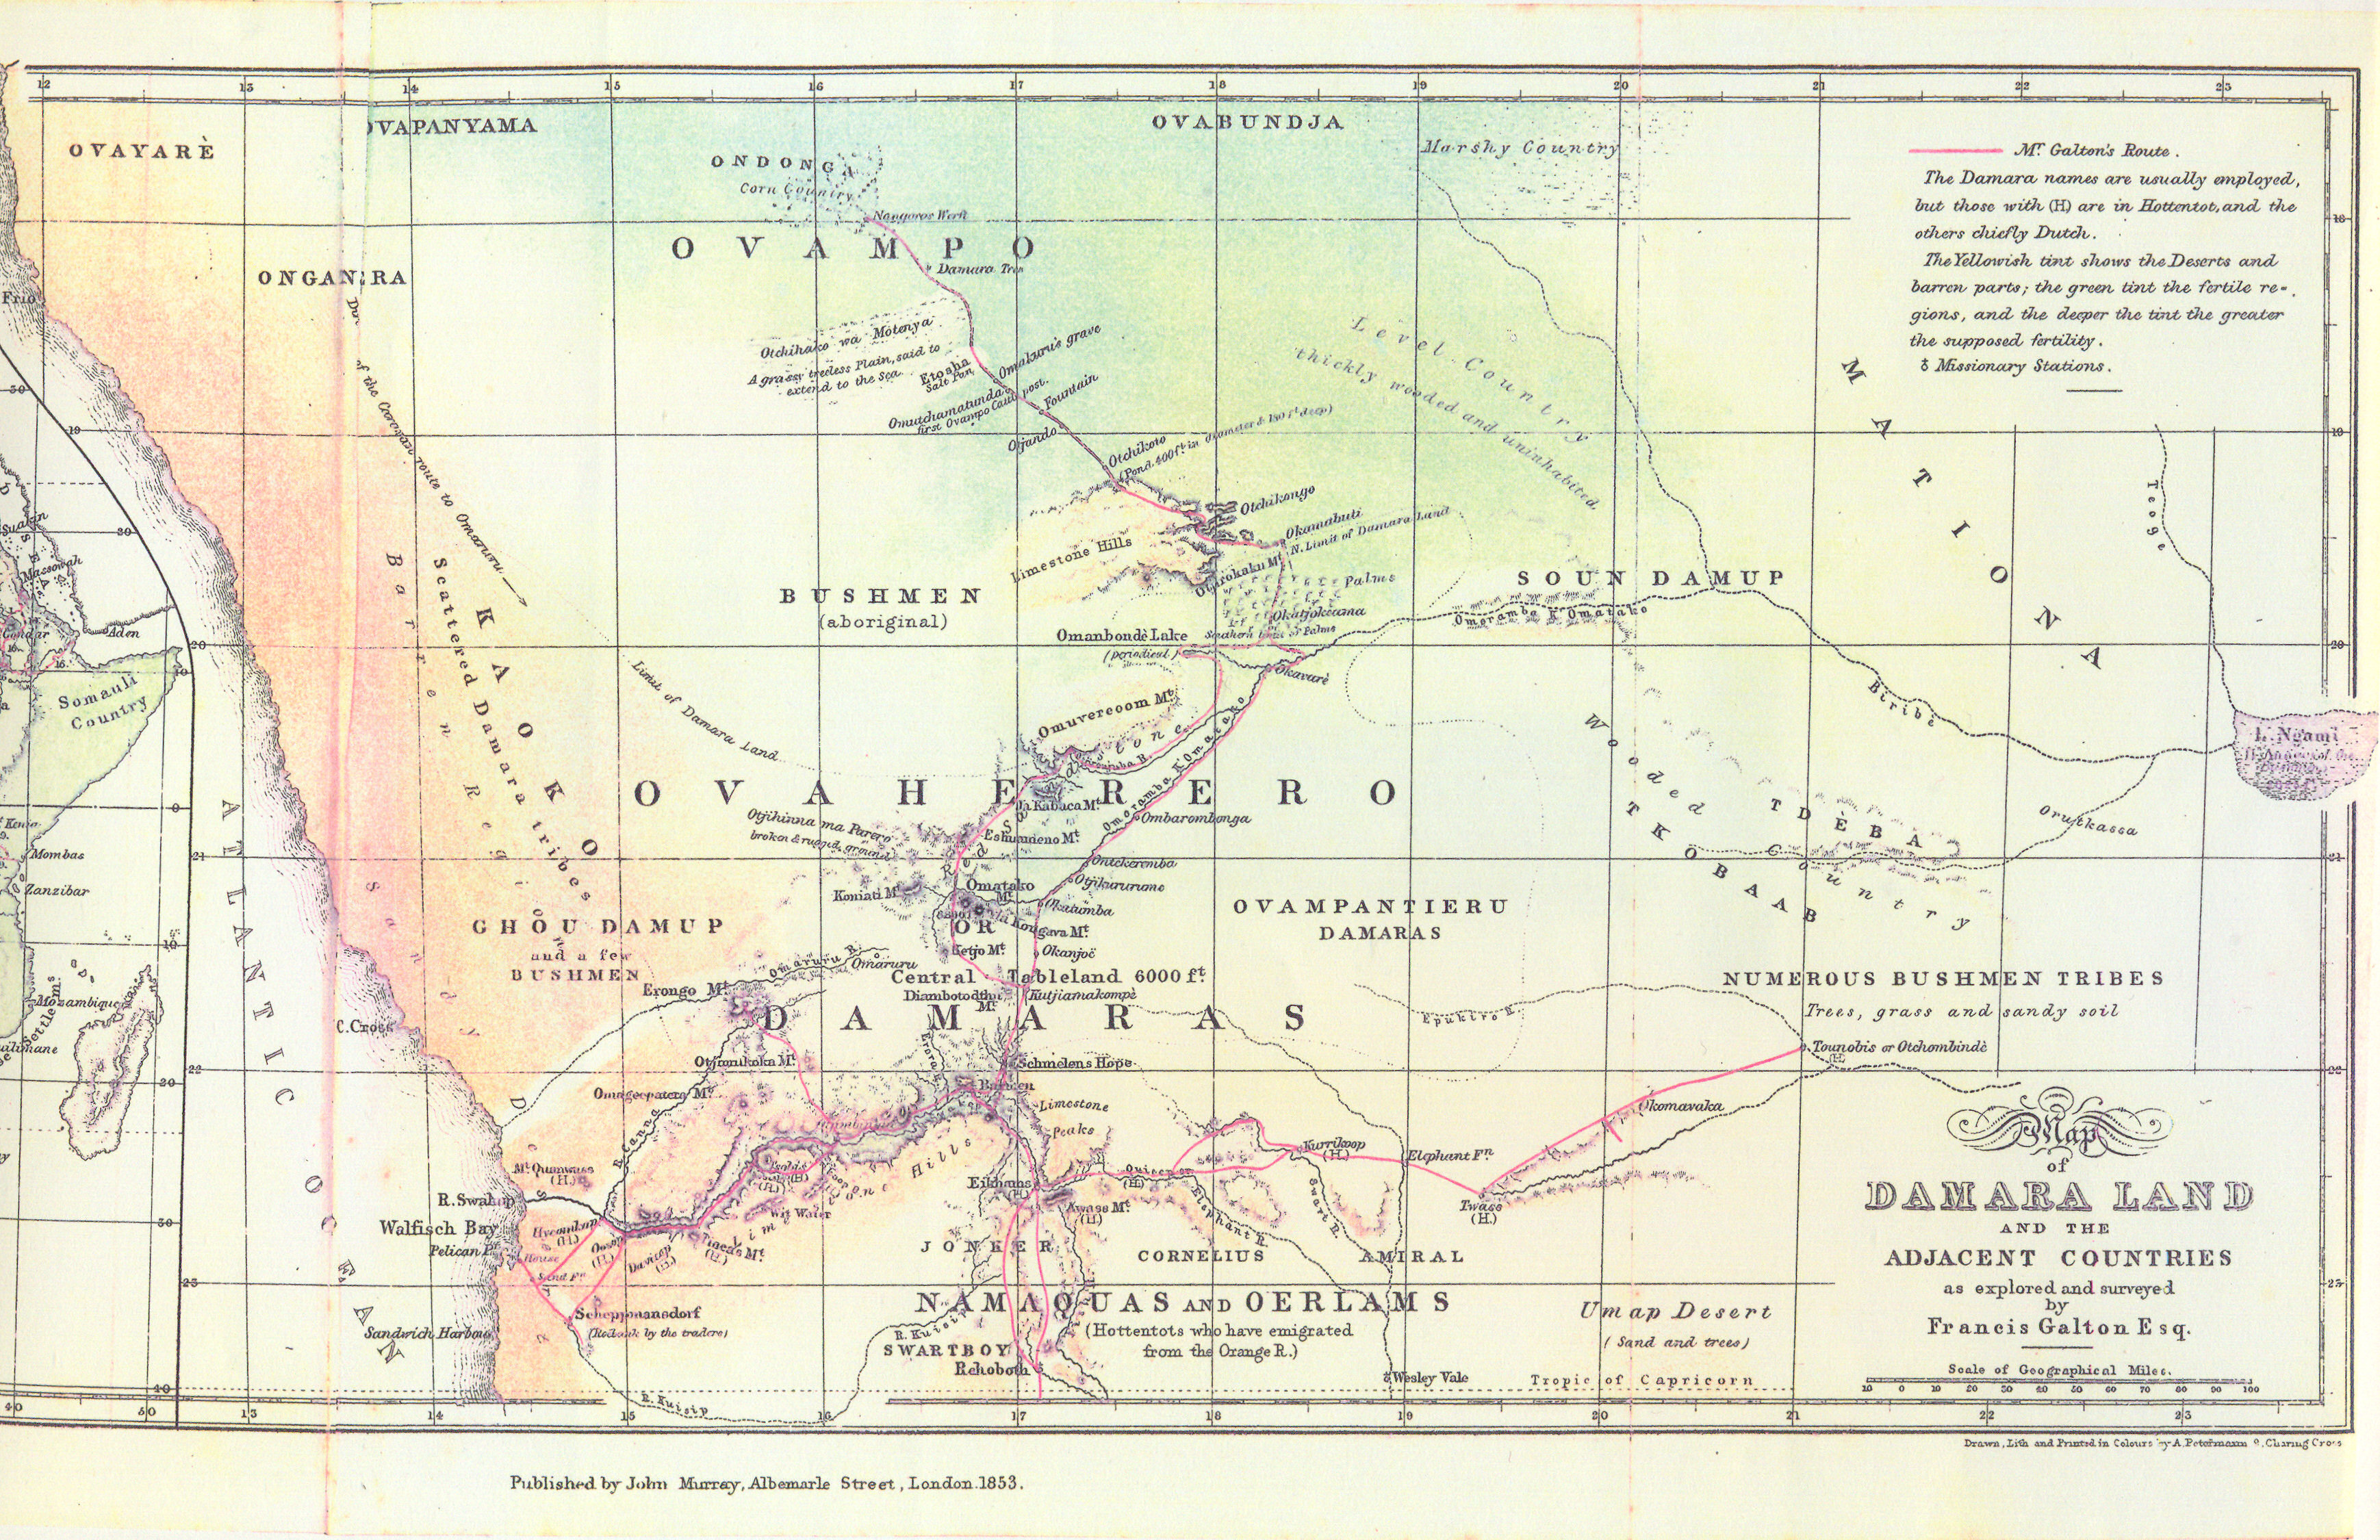 1853 map of Francis Galton's African explorations